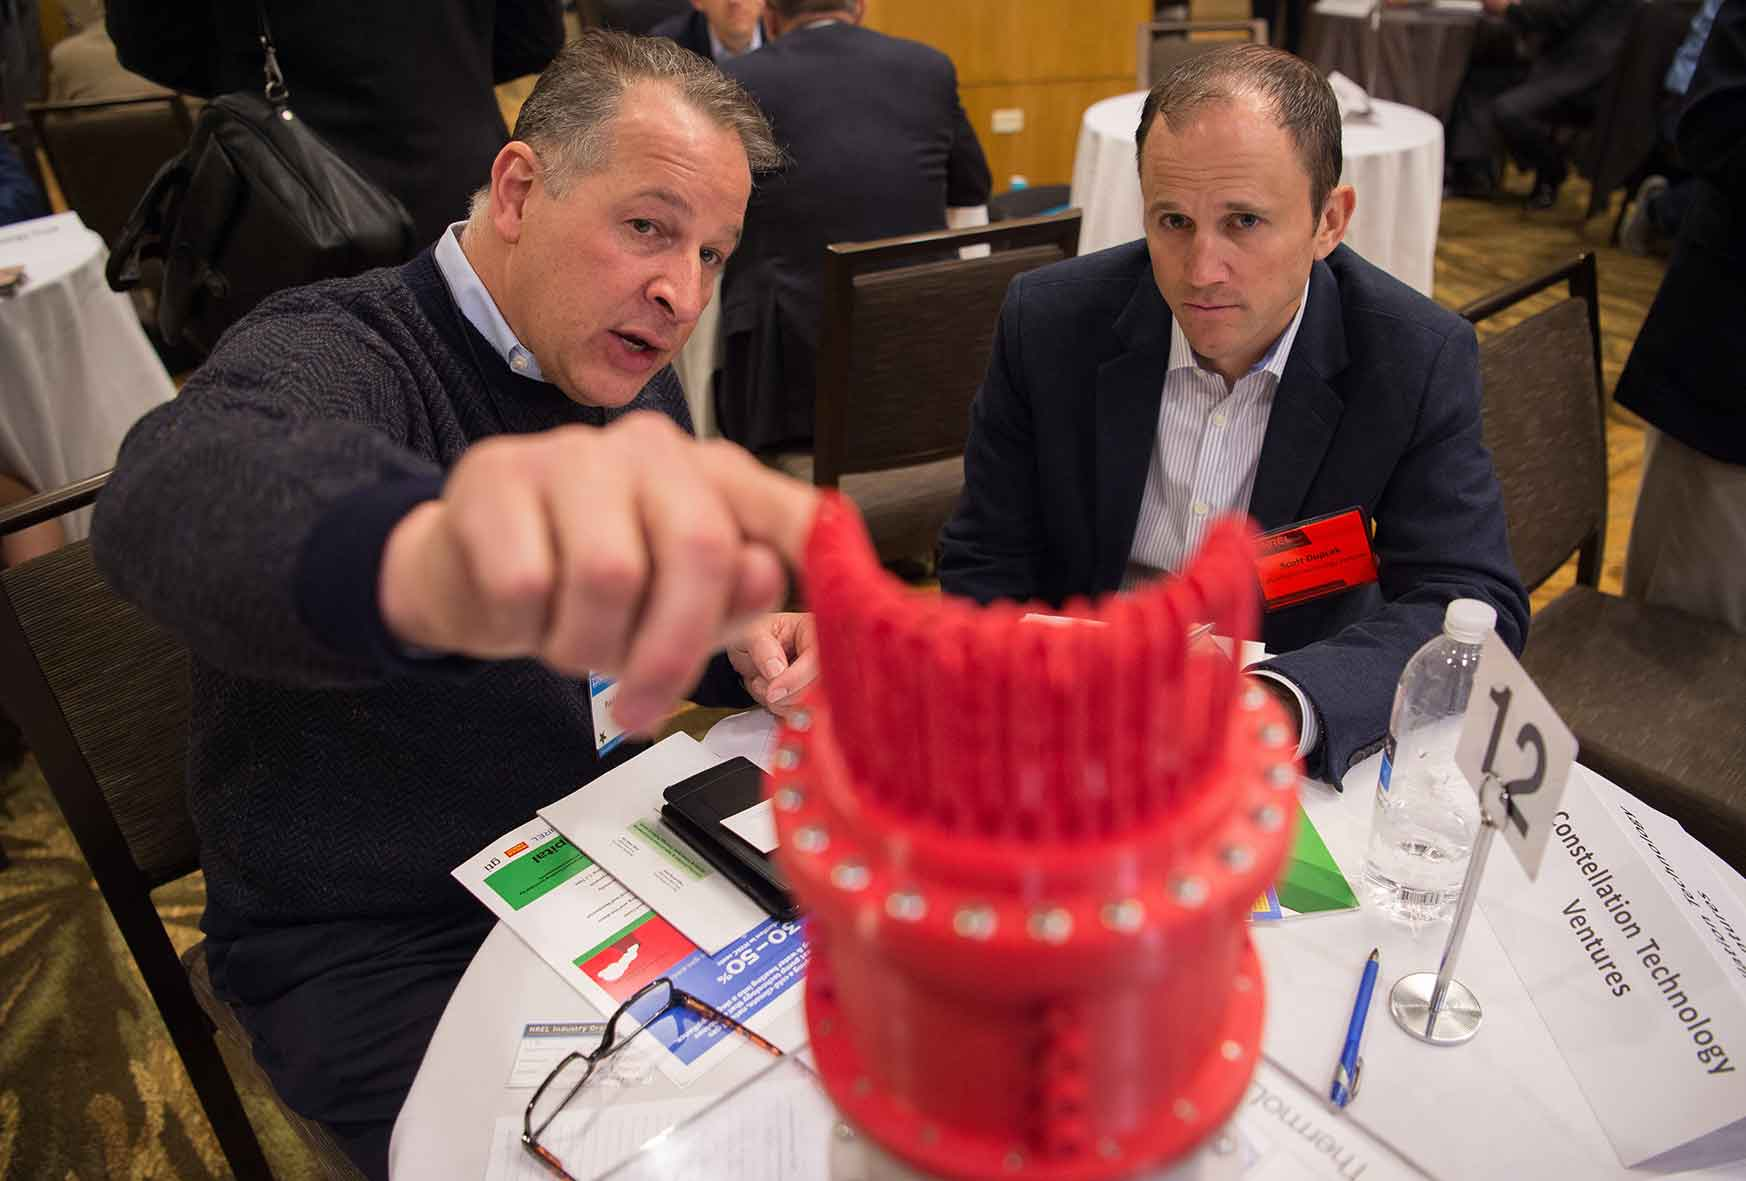 Industry Growth Forum Goes Swimmingly for Cleantech Innovators